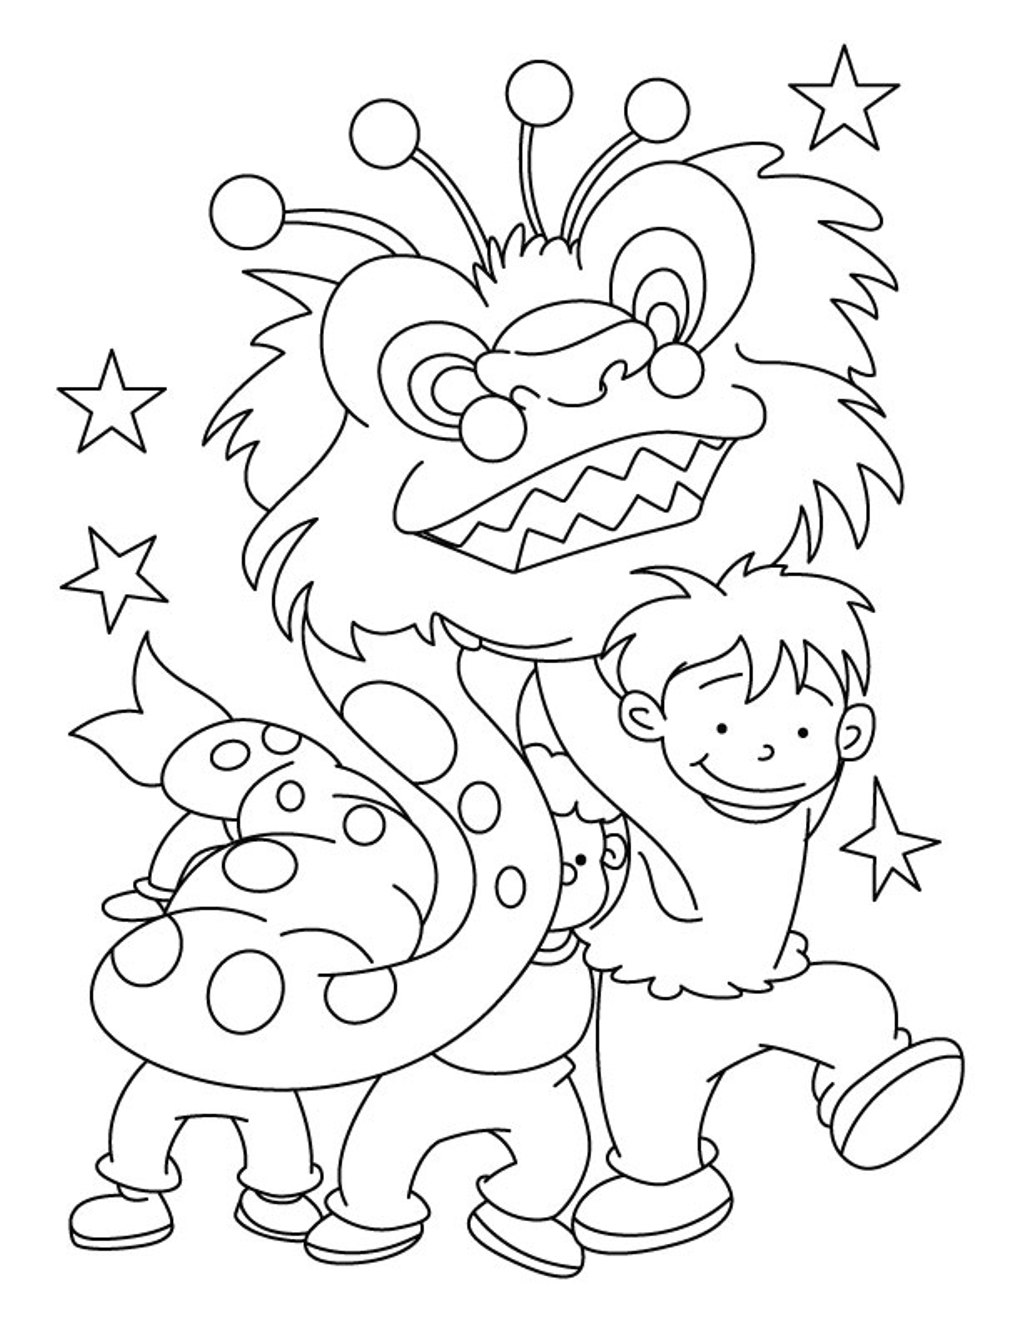 chinese colouring sheets chinese coloring pages to download and print for free chinese colouring sheets